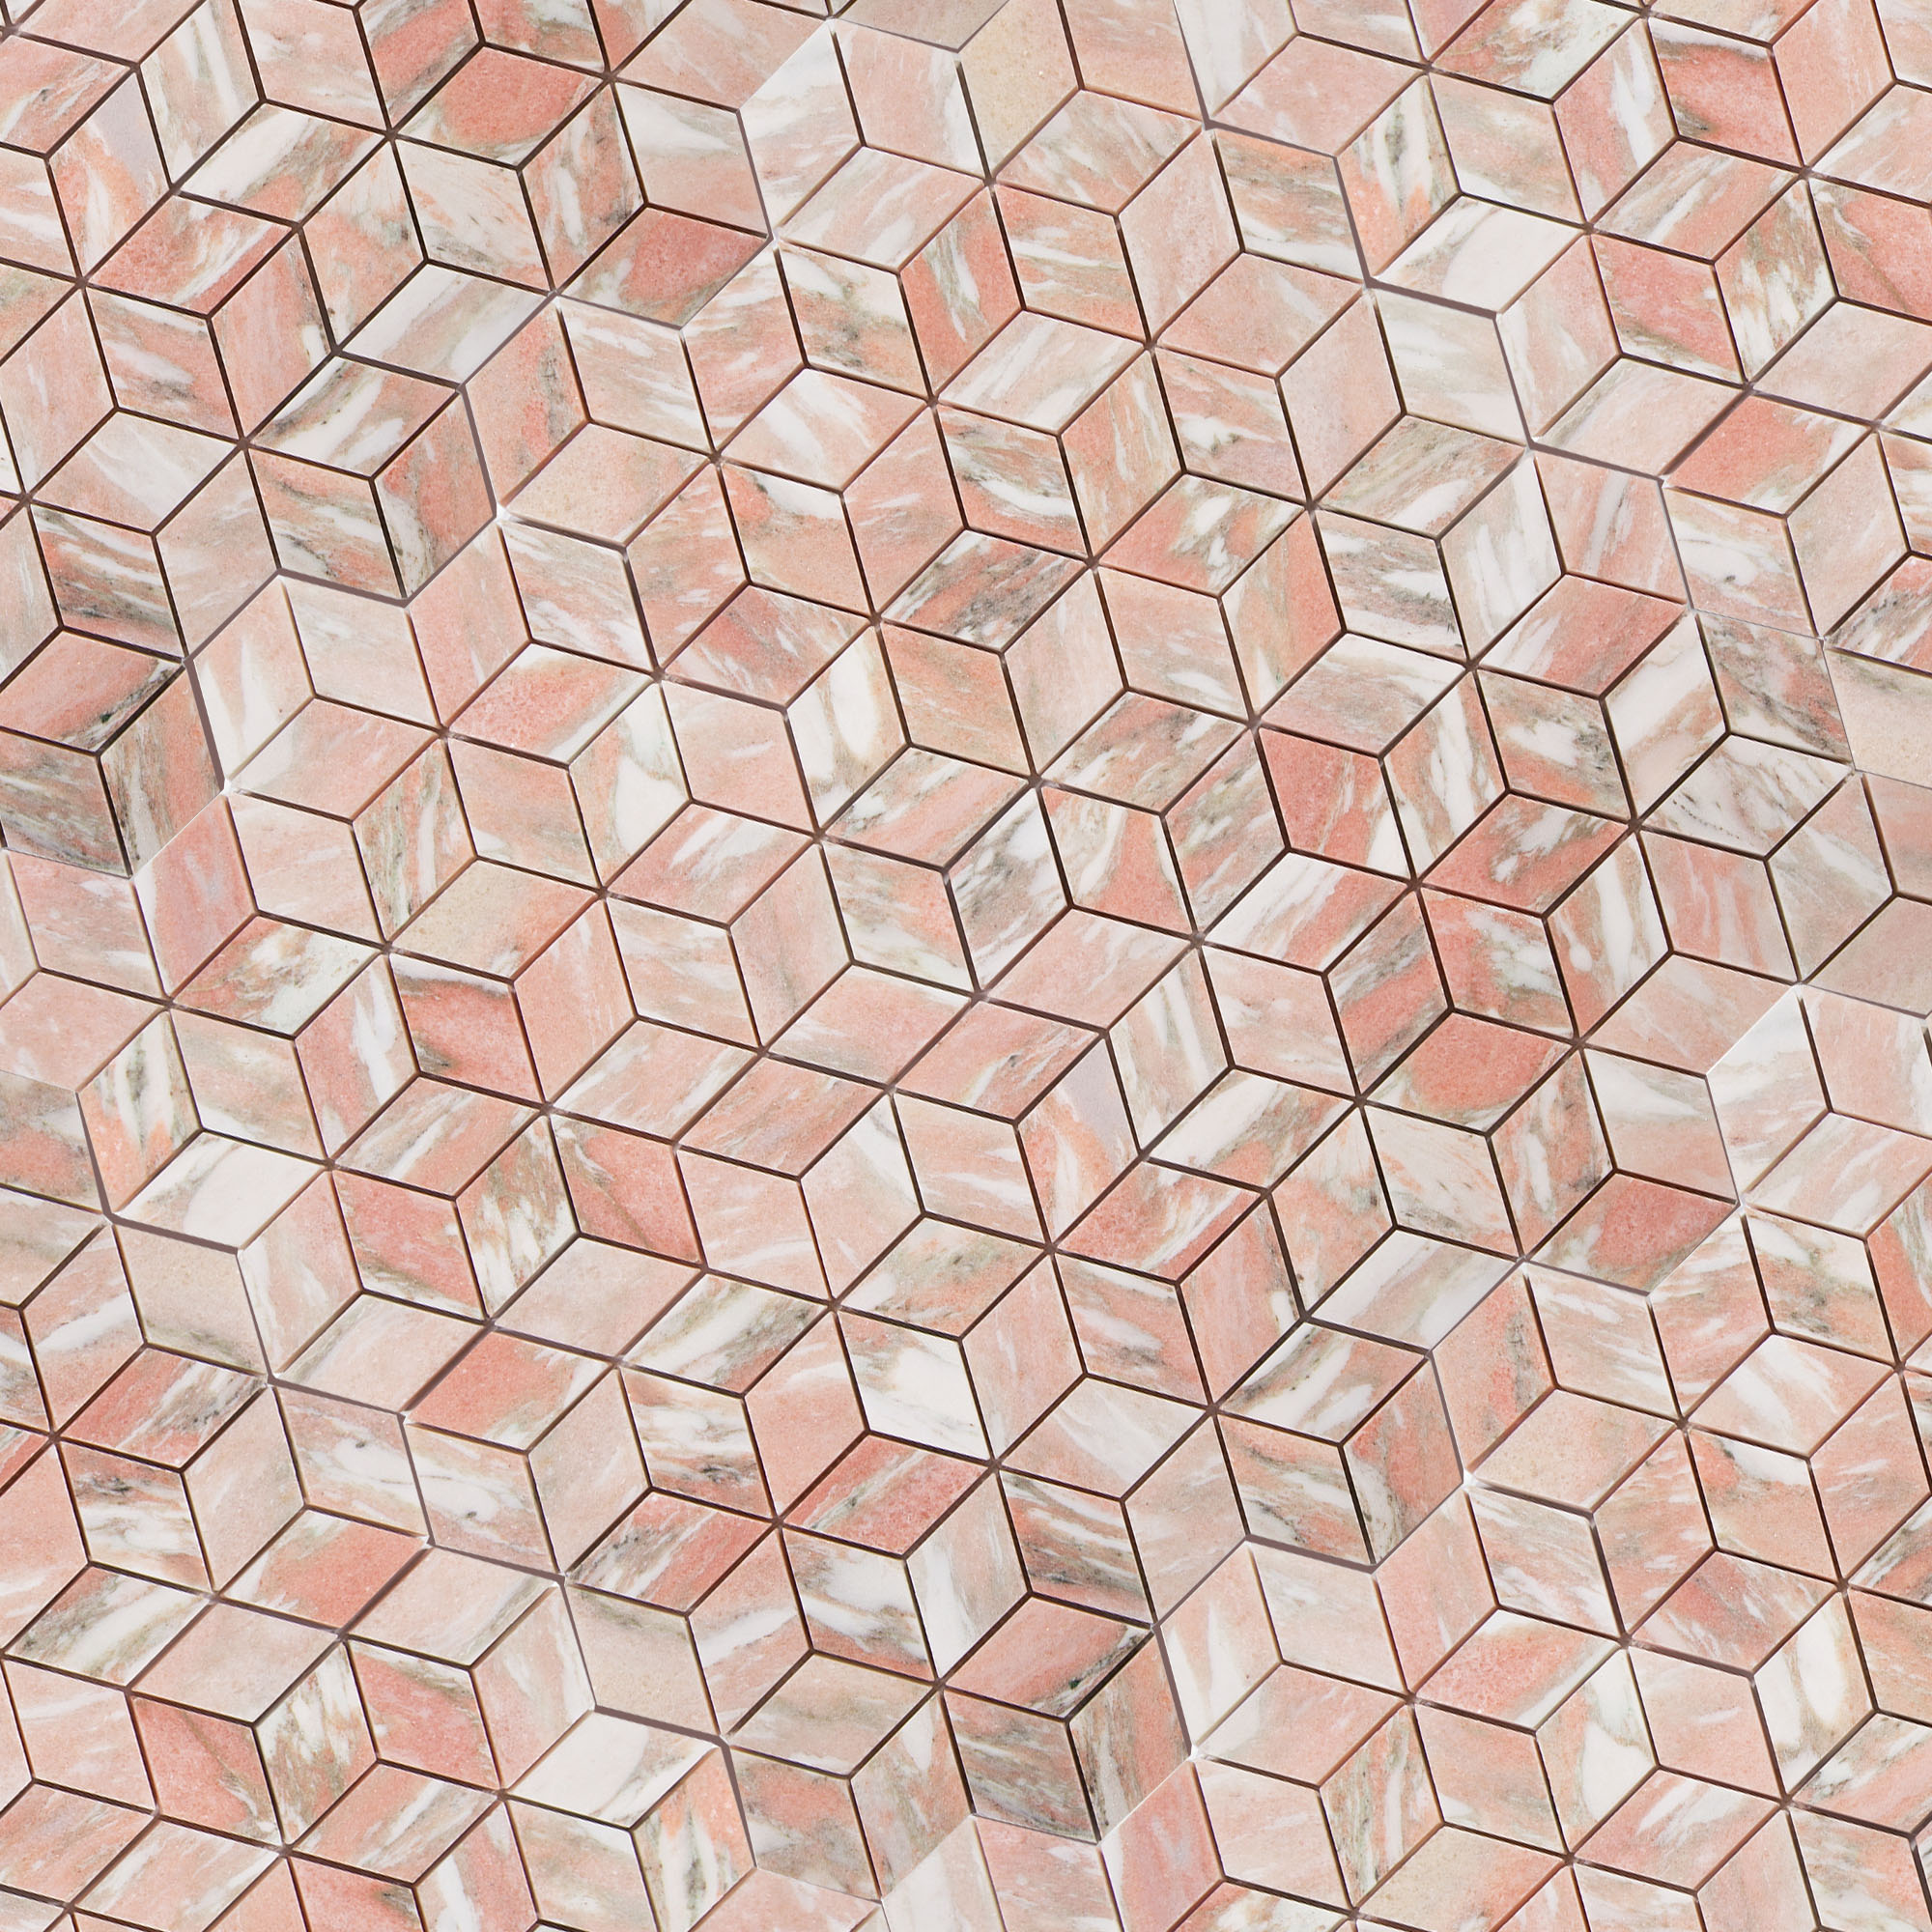 Norwegian Rose Marble - Honed - Diamond Mosaic